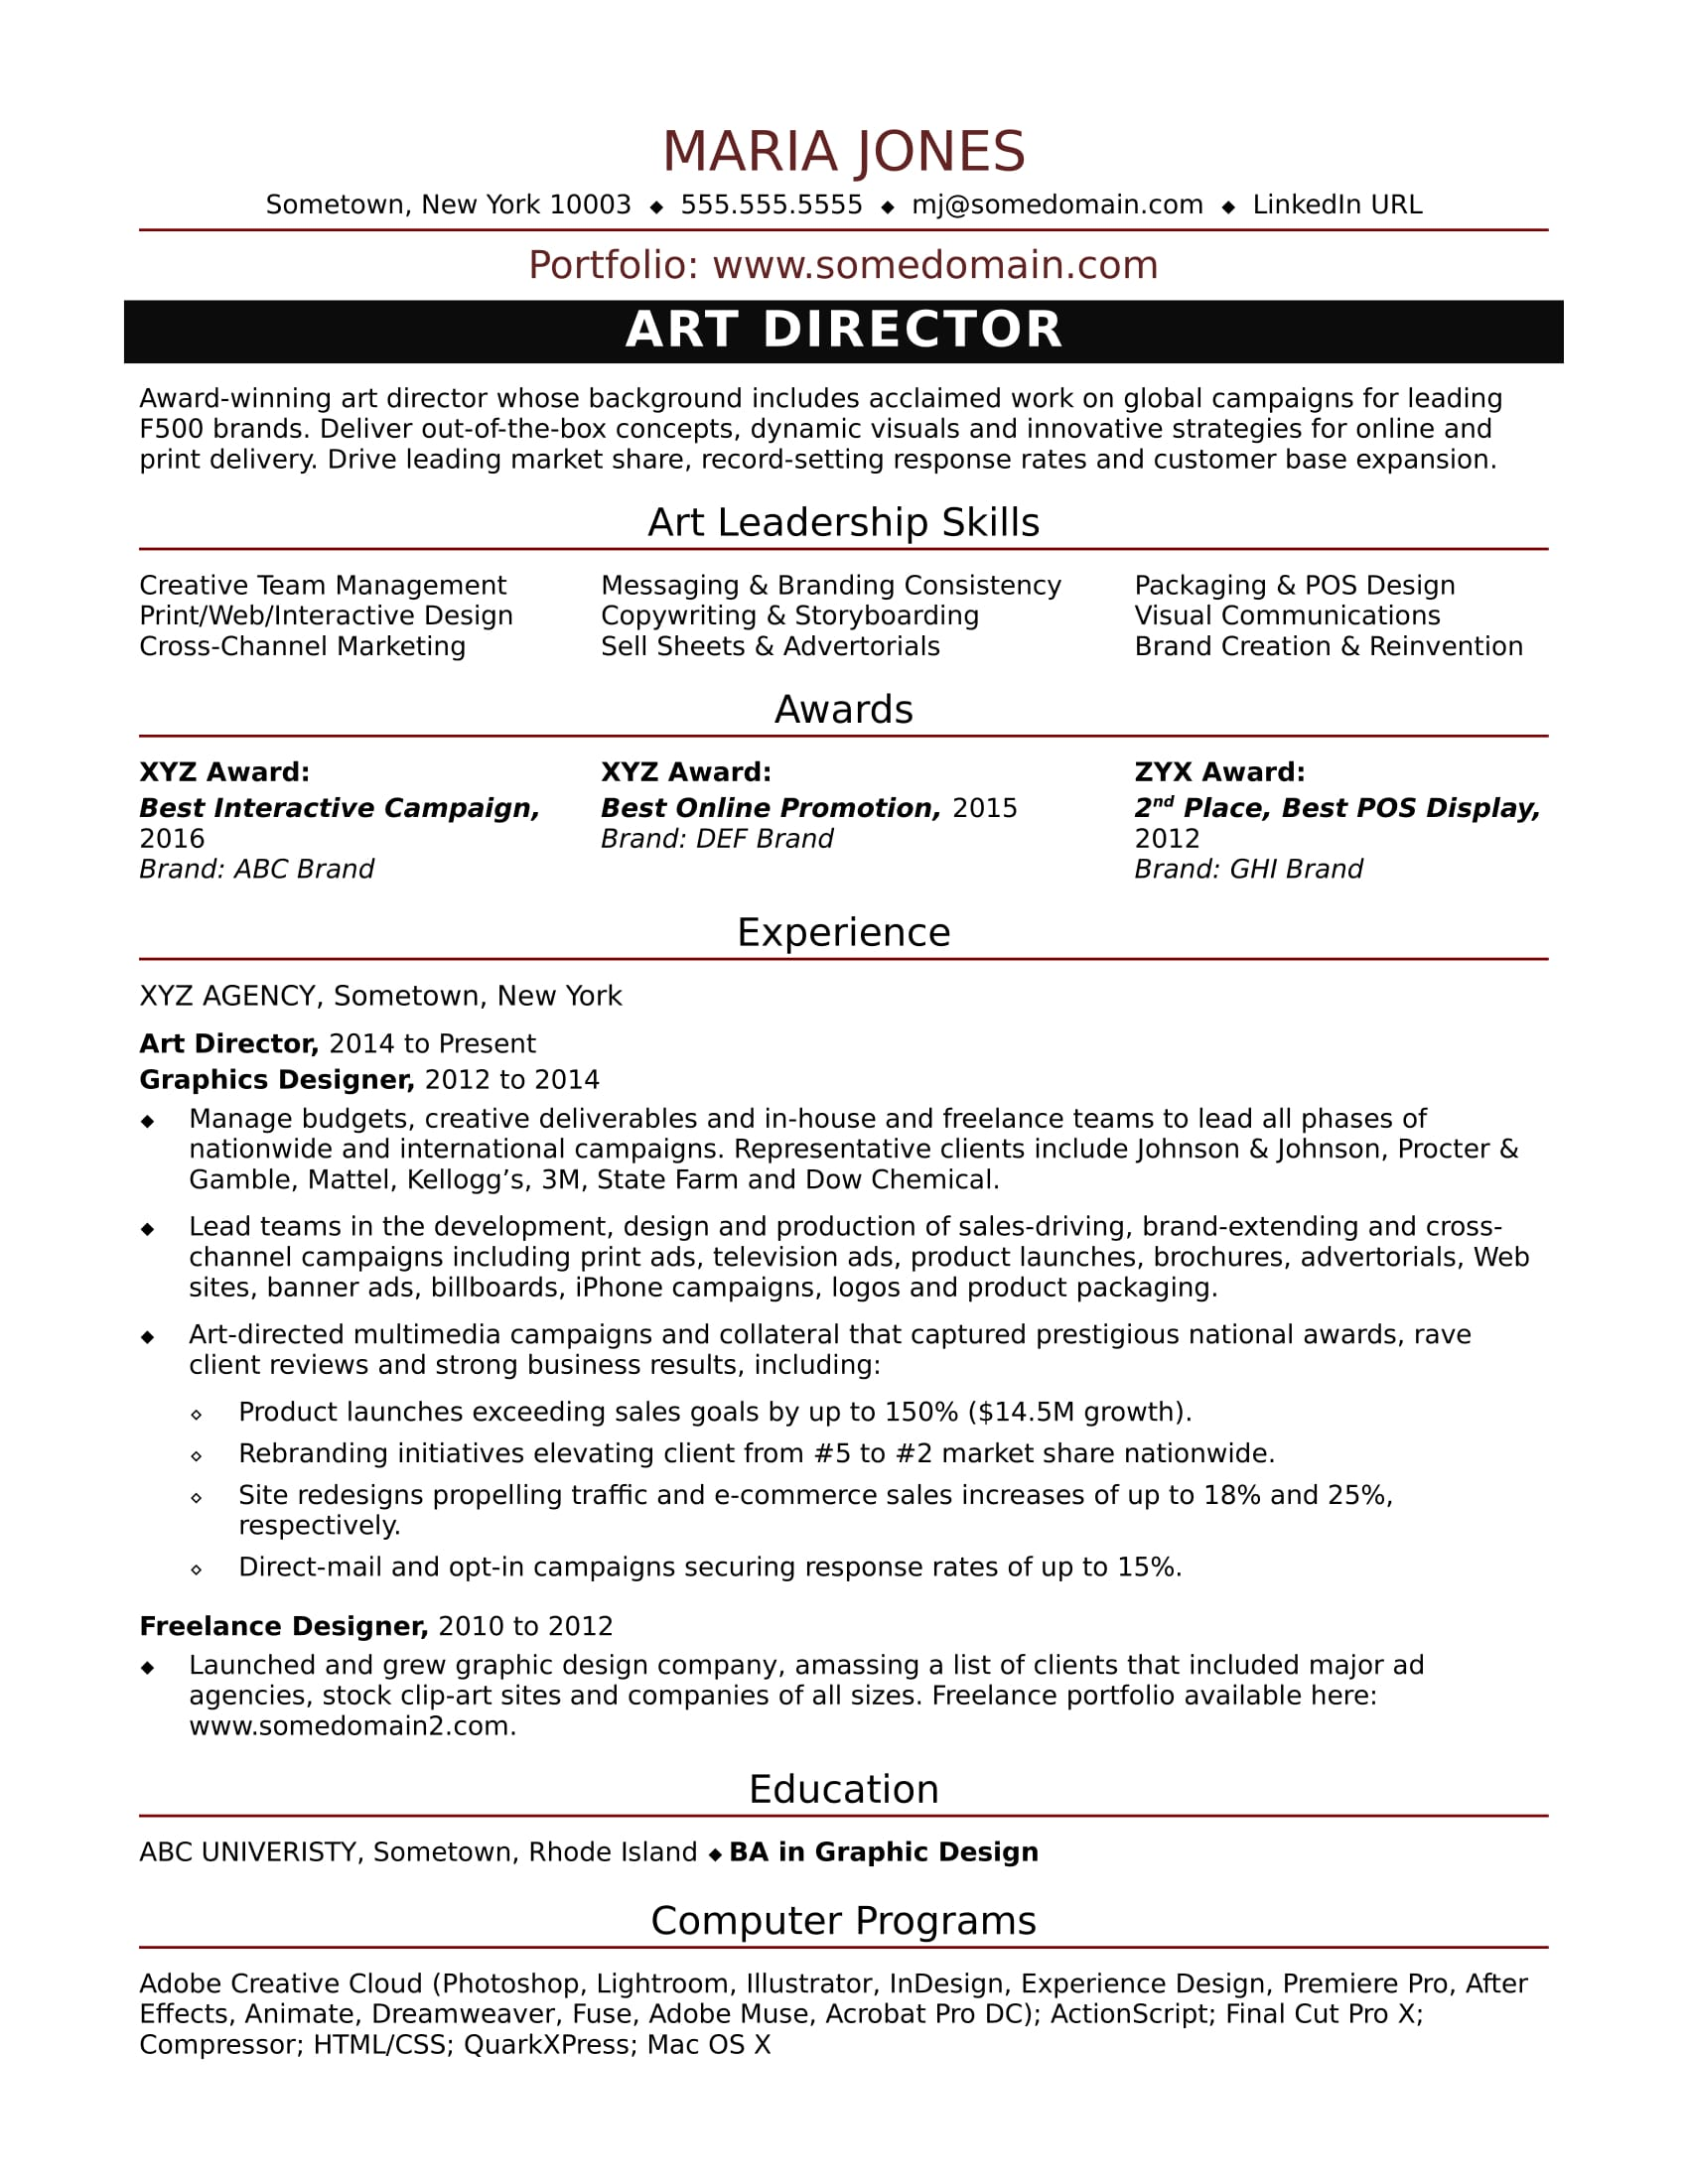 High Quality Sample Resume For A Midlevel Art Director  Director Resume